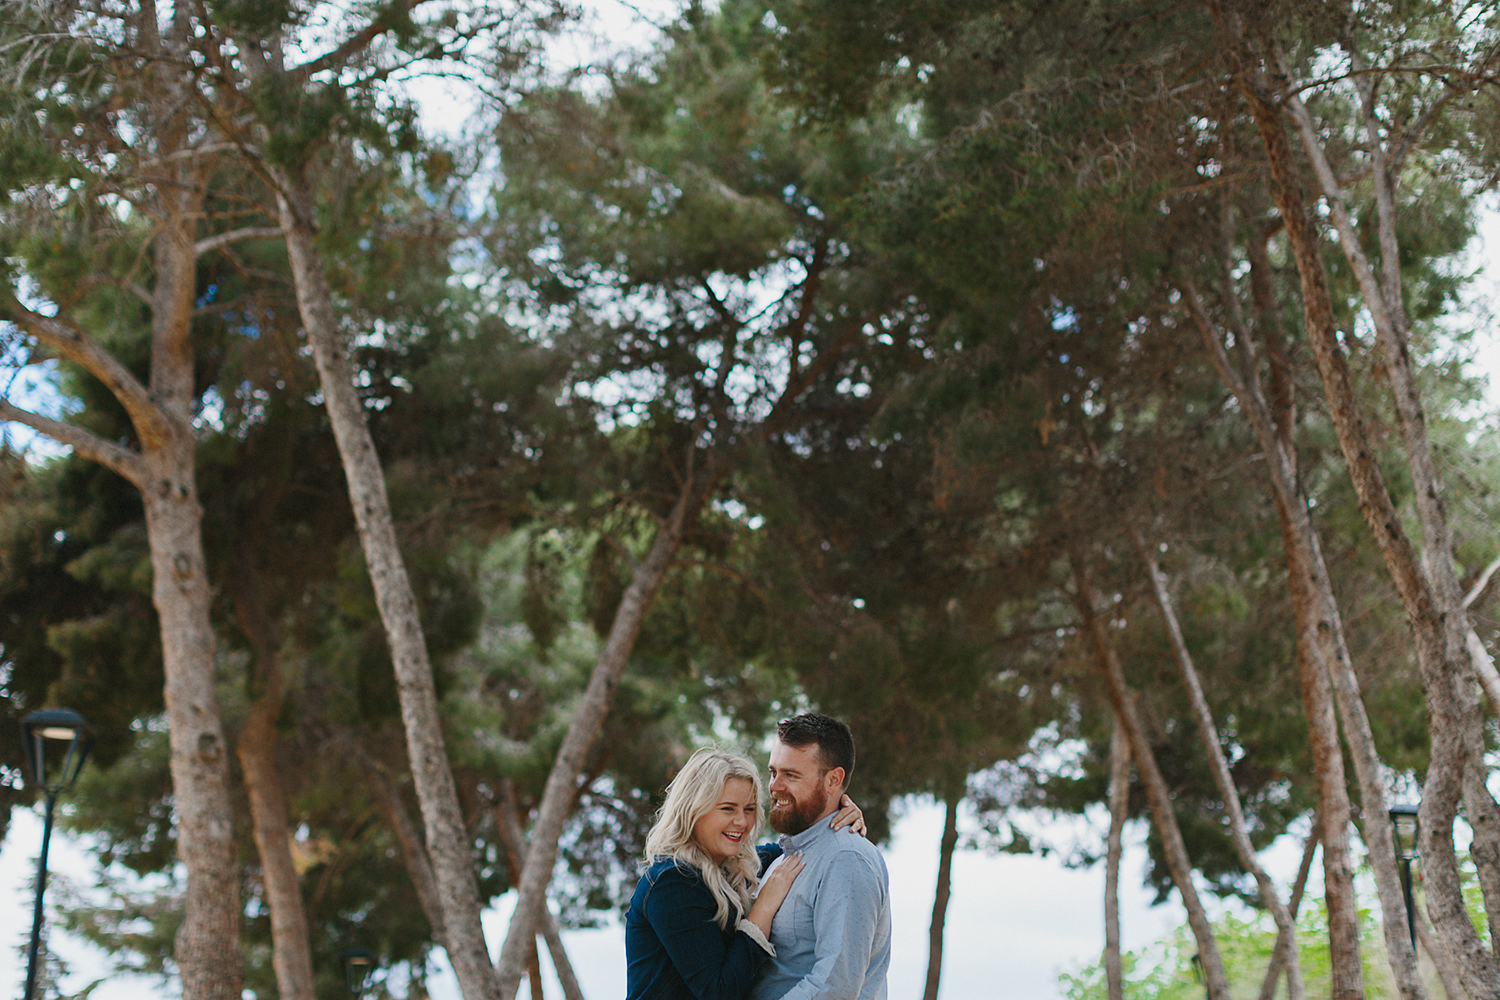 spanish-engagement-session-valencia-spain-toronto-wedding-photographer-ryanne-hollies-photography-bw-nature-old-trees-forest-in-old-town-javier.jpg